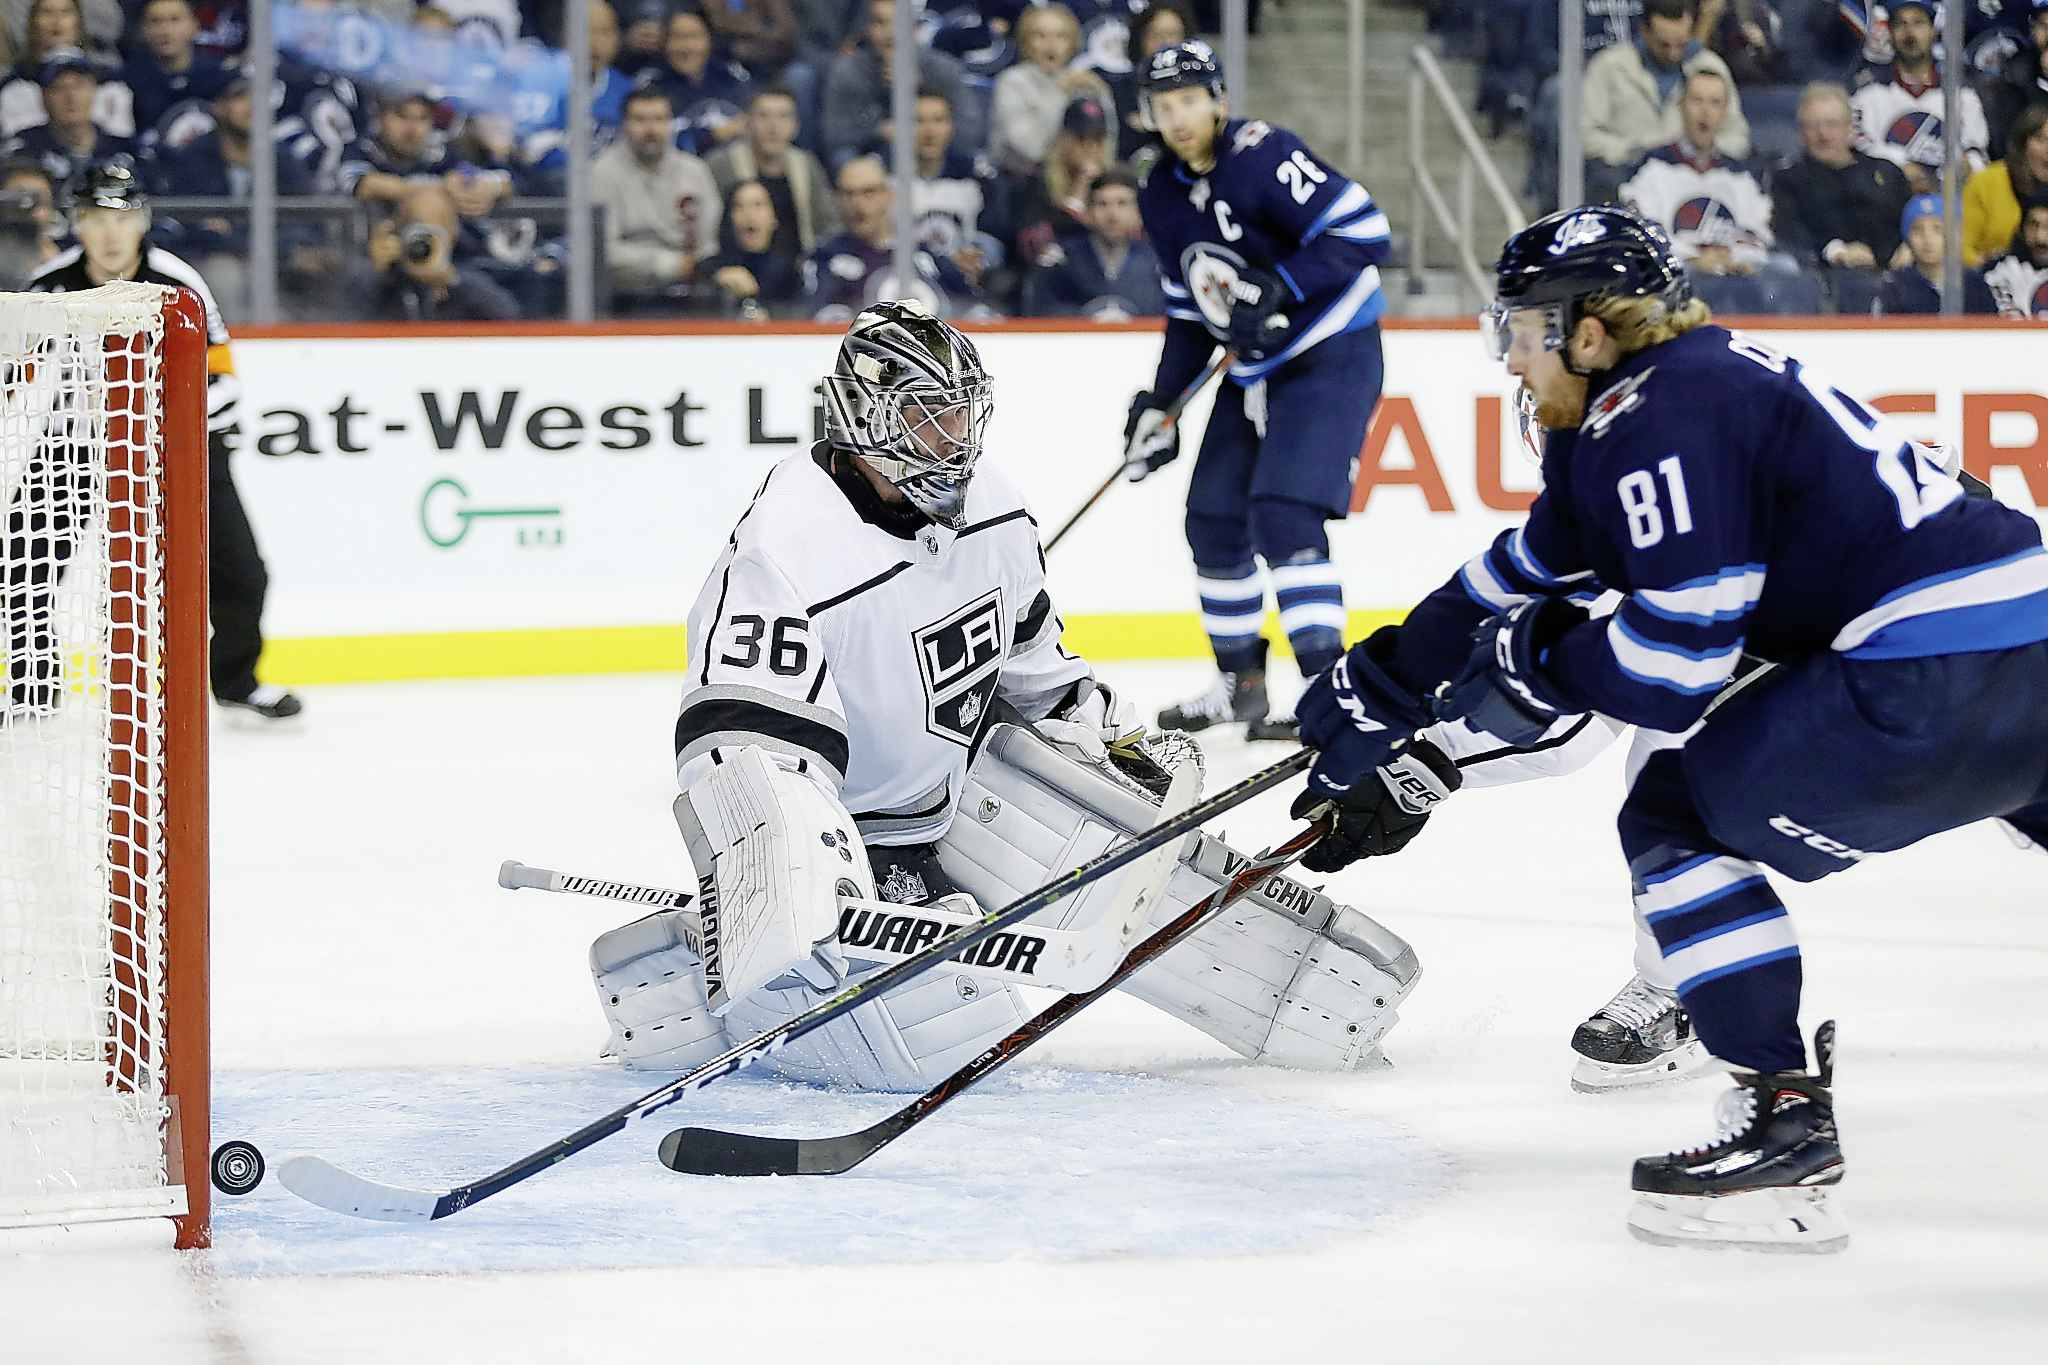 Winnipeg Jets' Kyle Connor scores a power play goal on a pass from Blake Wheeler against the Los Angeles Kings goaltender Jack Campbell during the second period in Winnipeg on Tuesday.